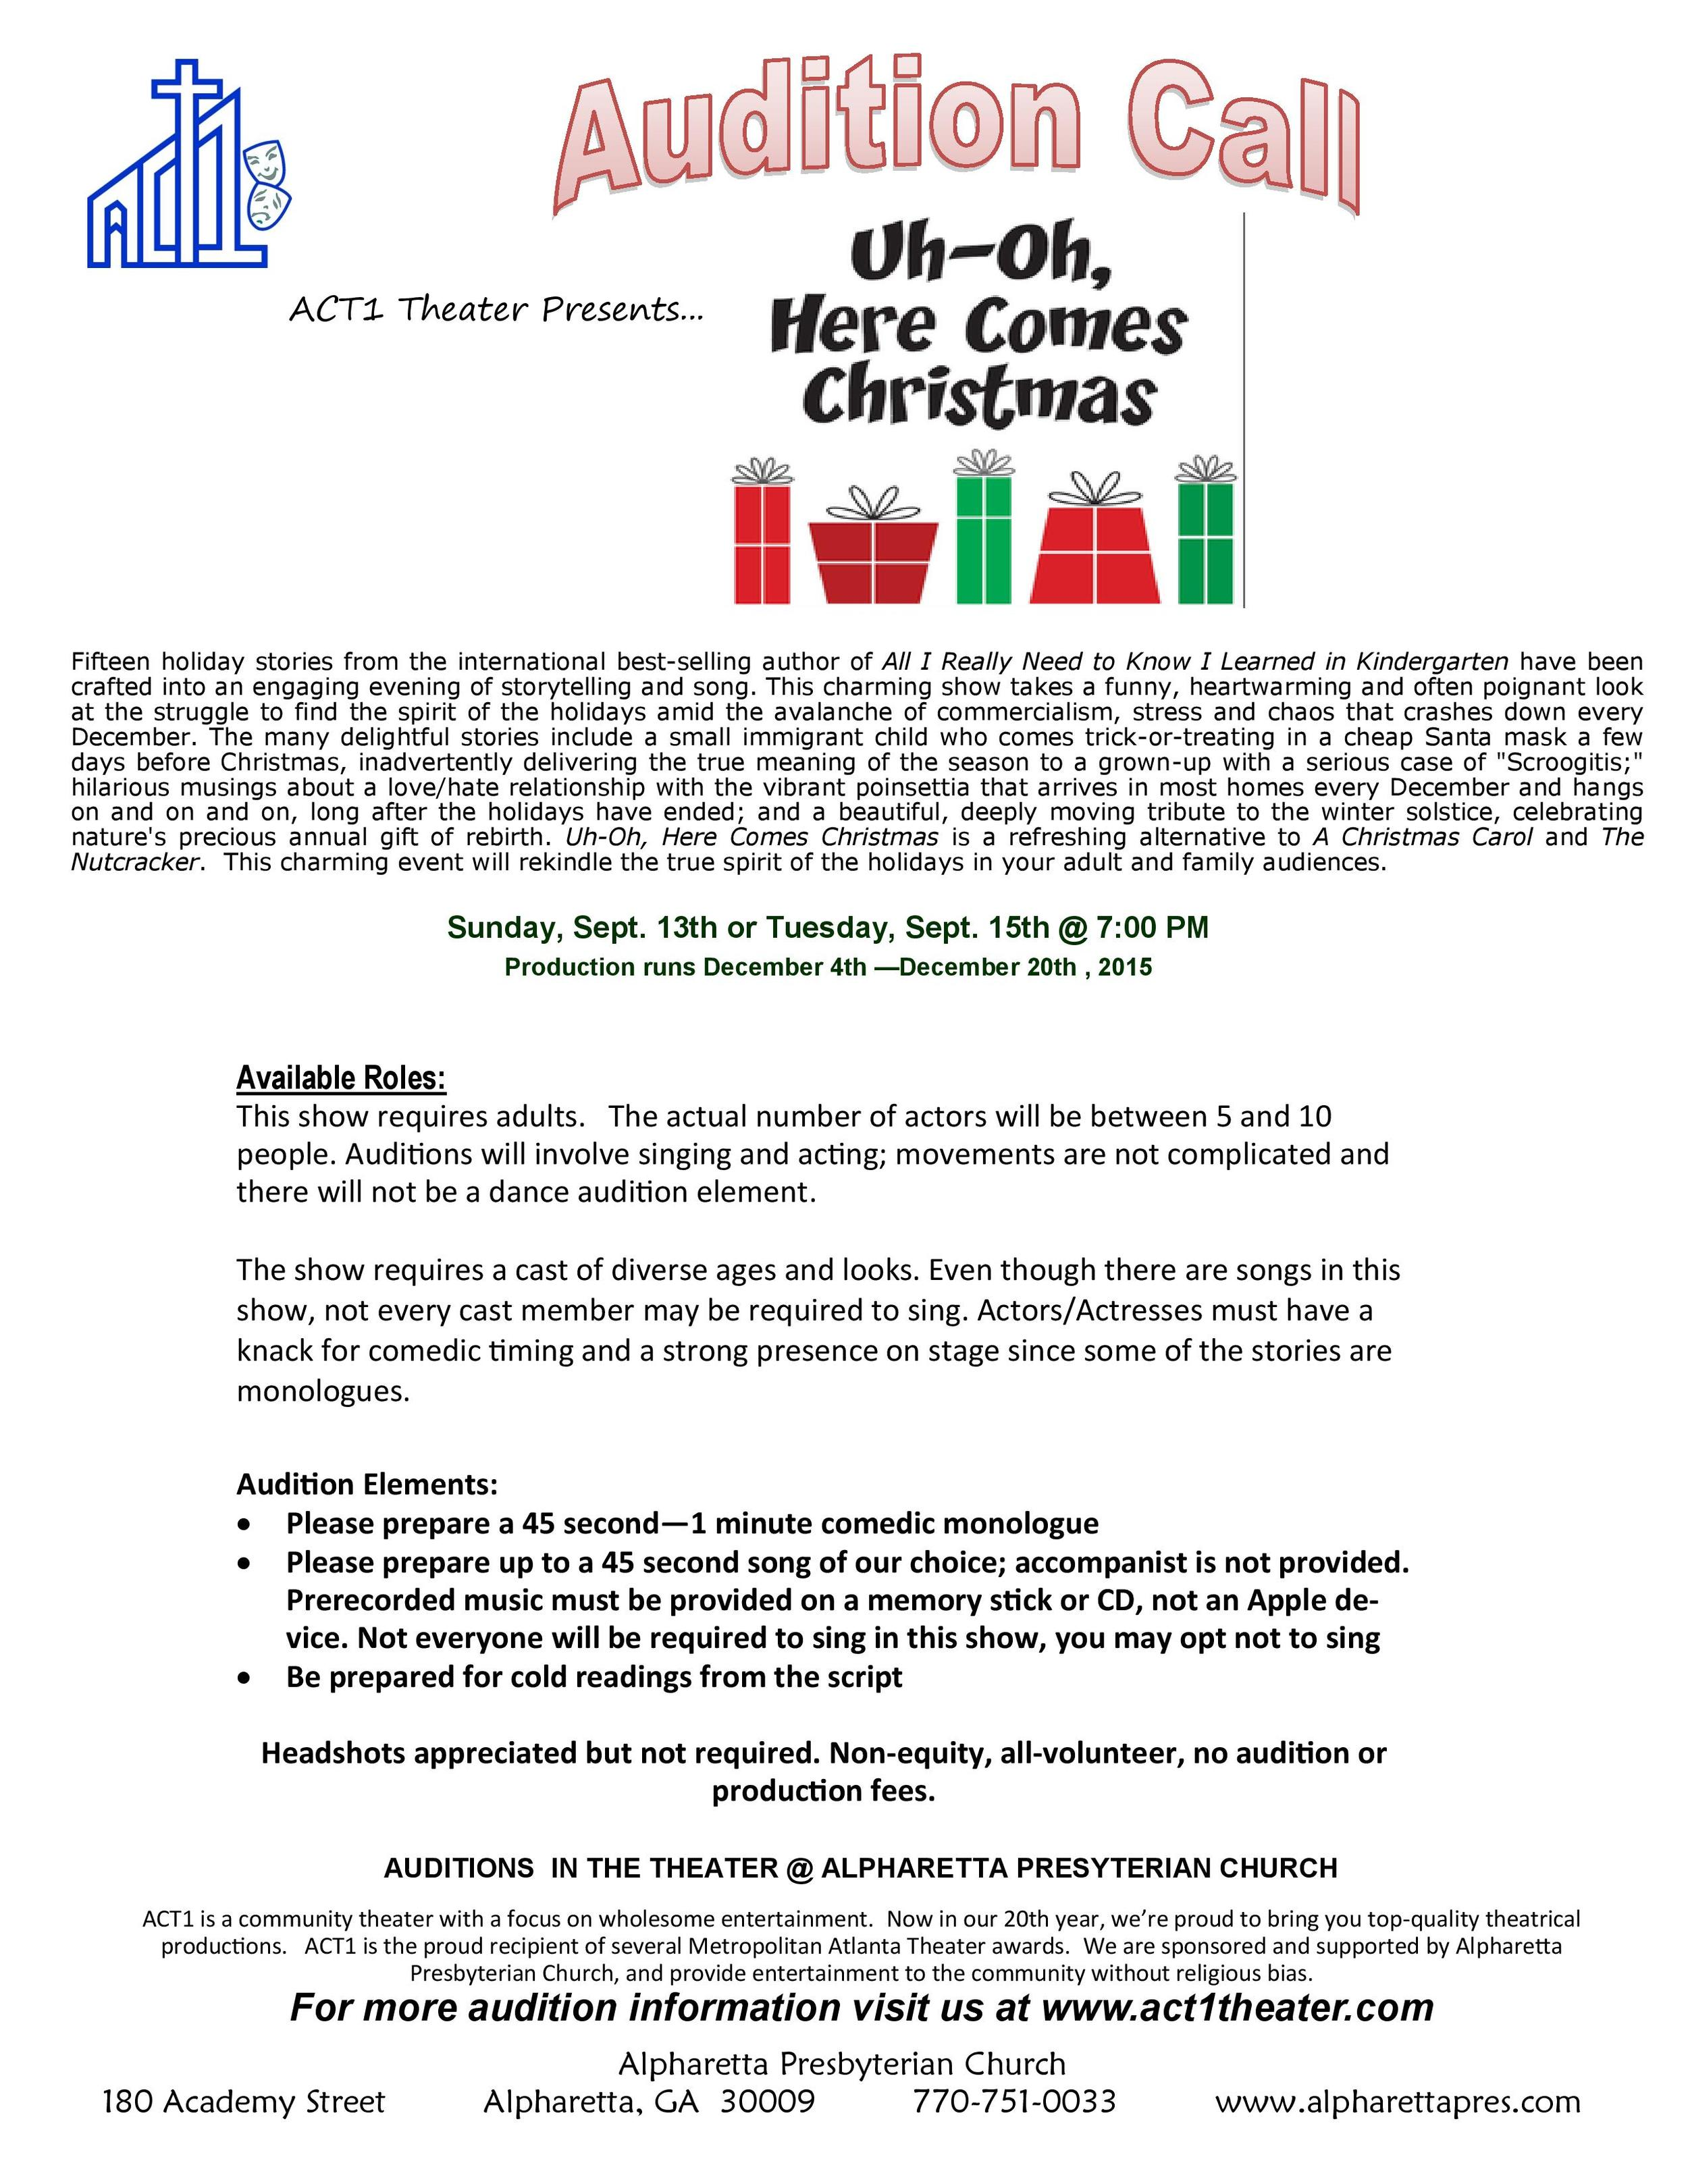 Act1_Theater_Audition_OhUhHereComesChristmas